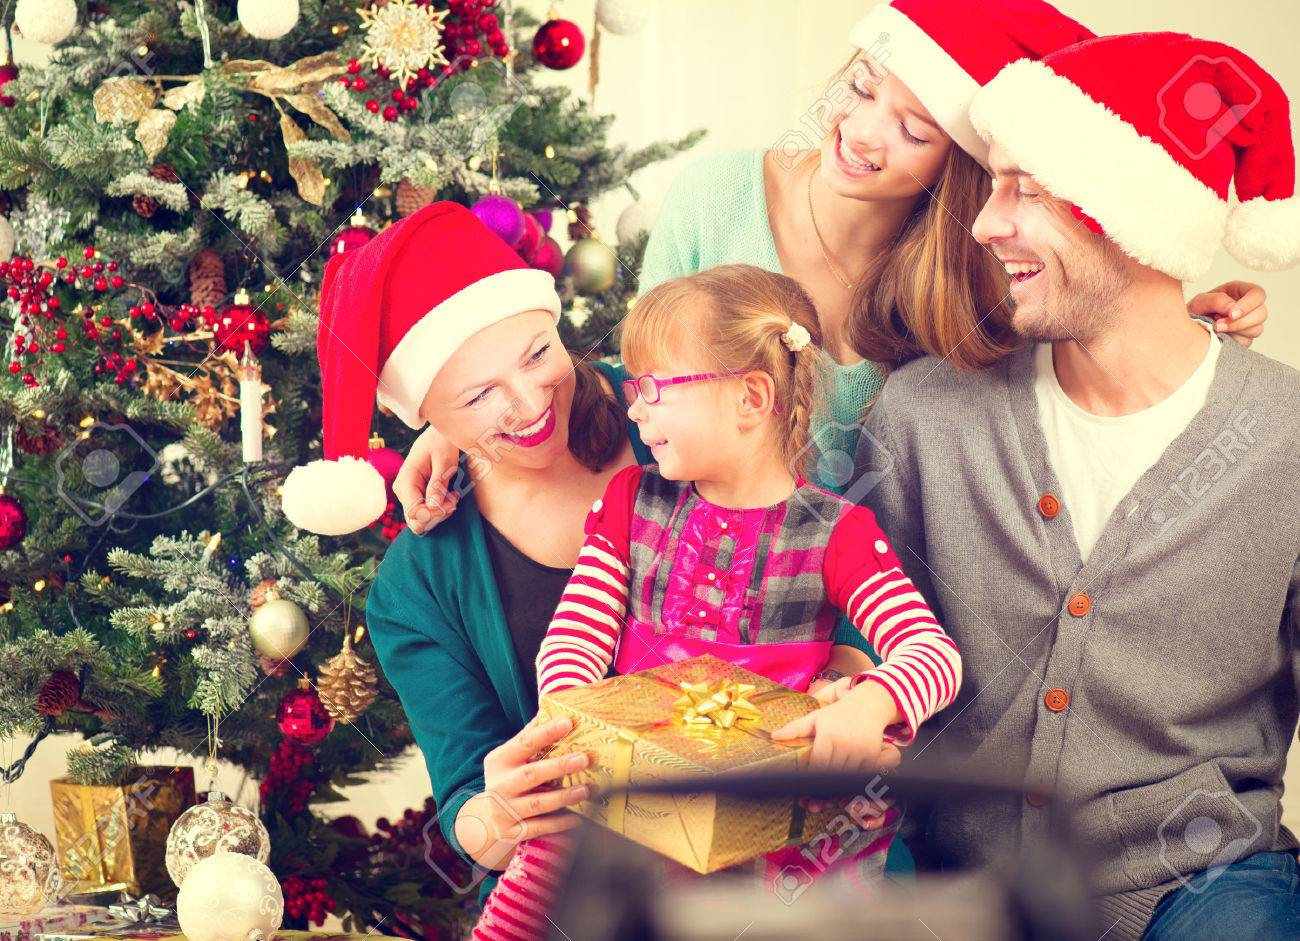 Christmas Family With Kids Opening Christmas Gifts Stock Photo ...